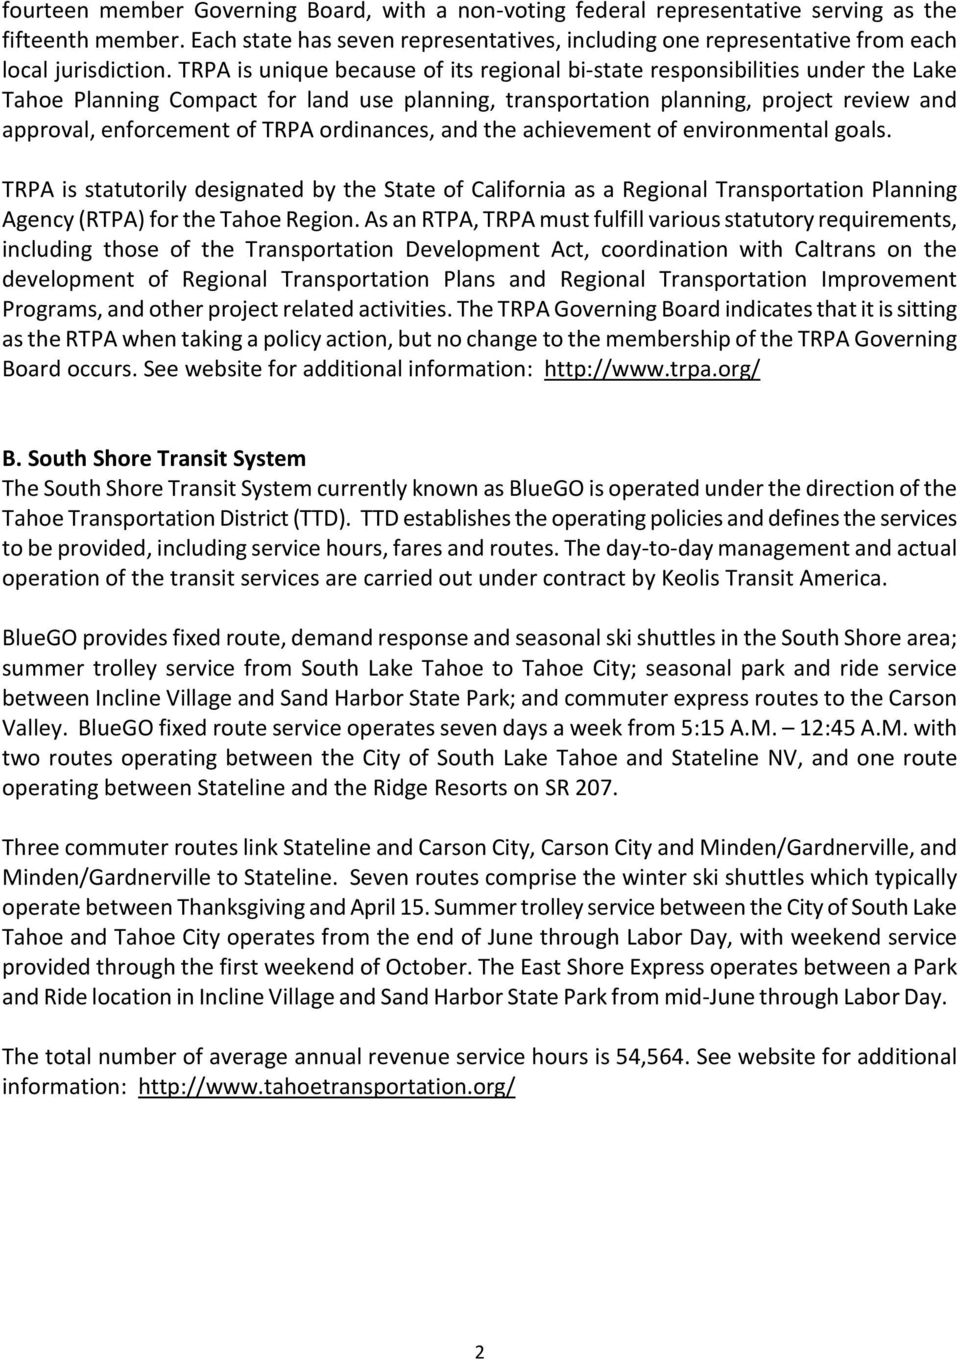 TRPA is unique because of its regional bi-state responsibilities under the Lake Tahoe Planning Compact for land use planning, transportation planning, project review and approval, enforcement of TRPA